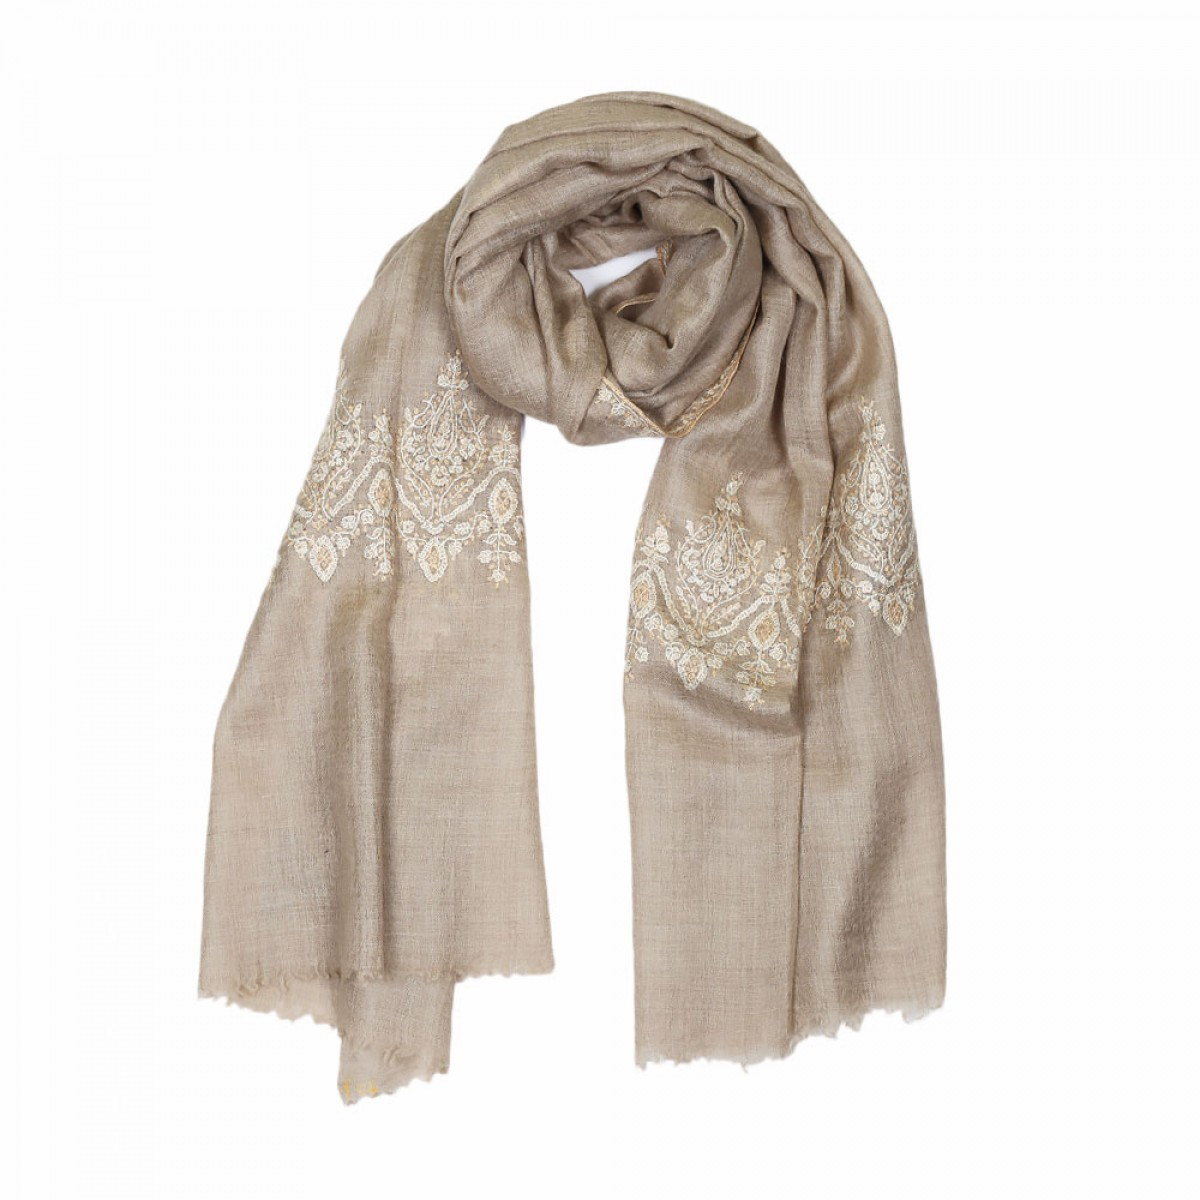 Embroidered Handloom Pashmina Stole - Natural Latte